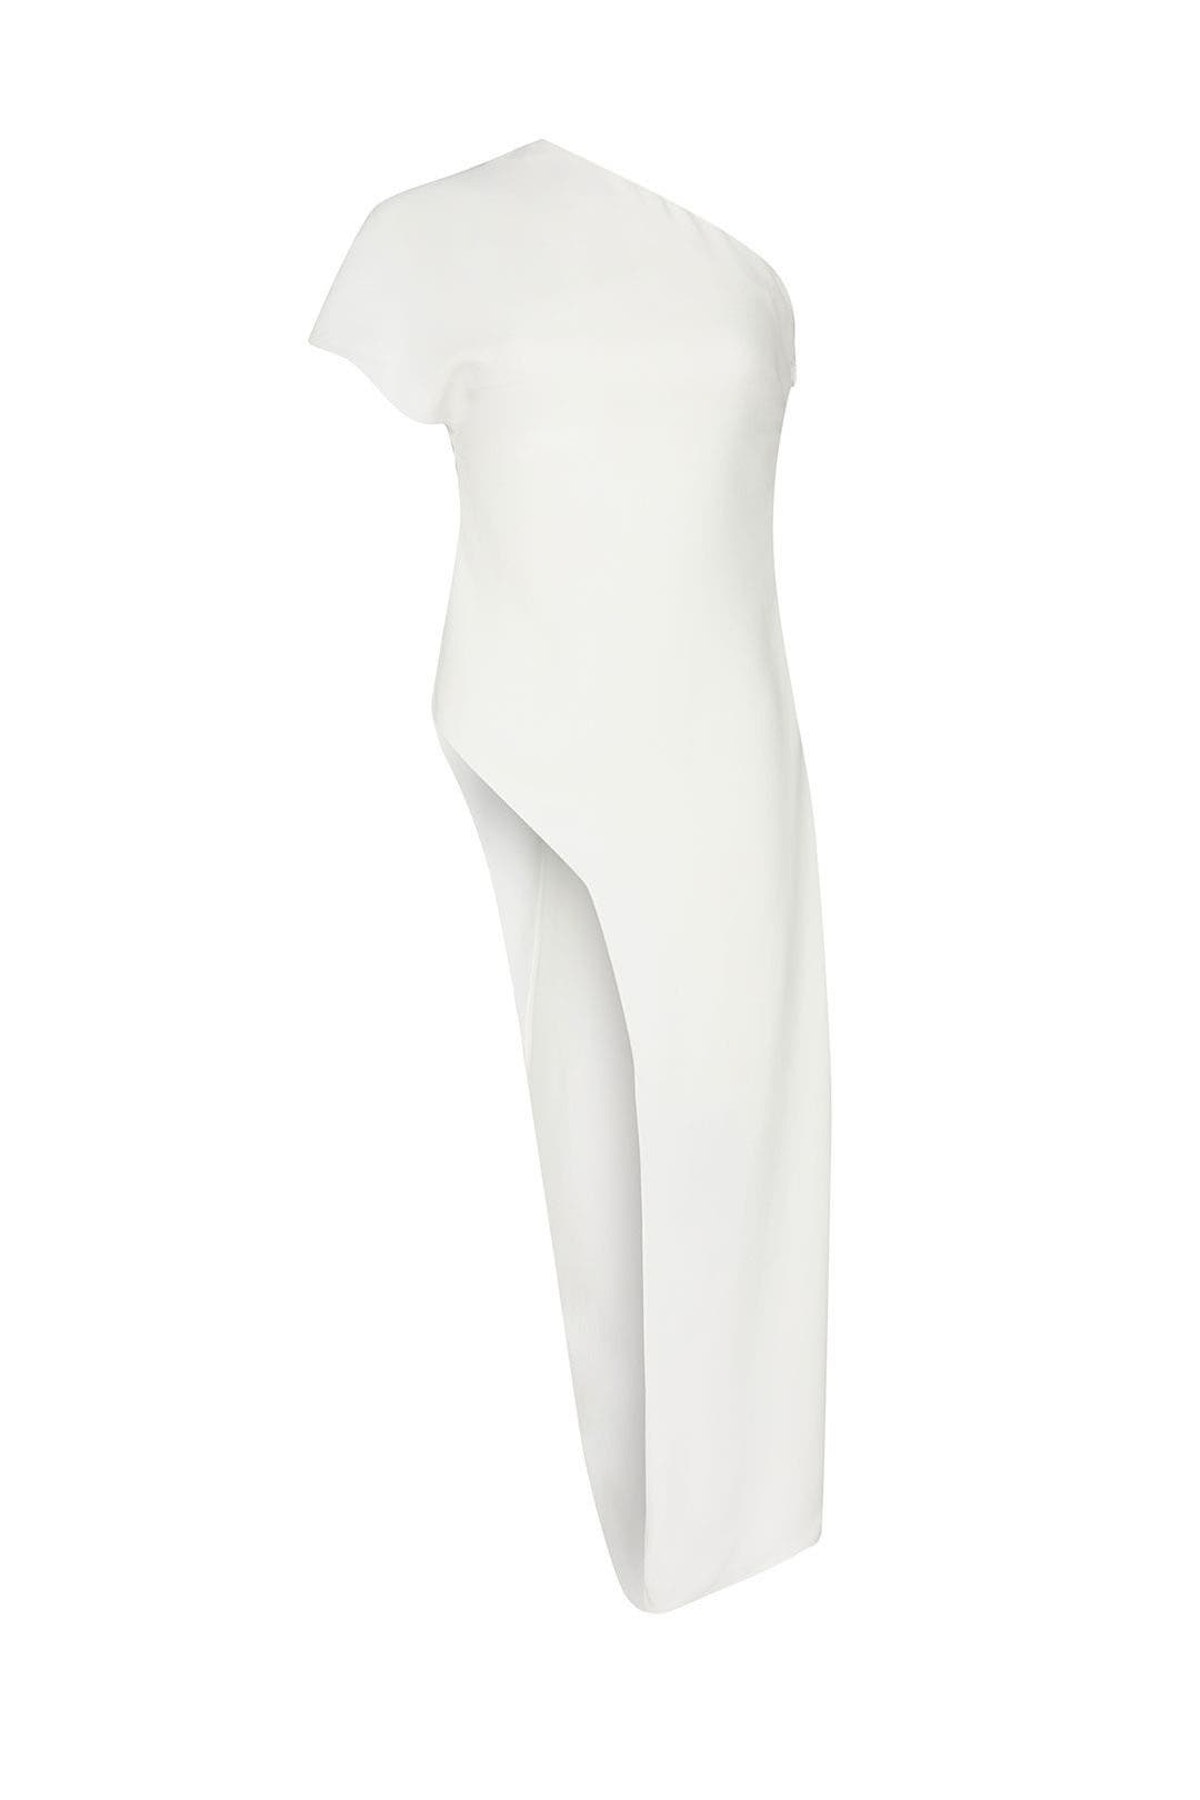 White one shoulder draped top from CUSHNIE, available to shop or rent via Rent The Runway.